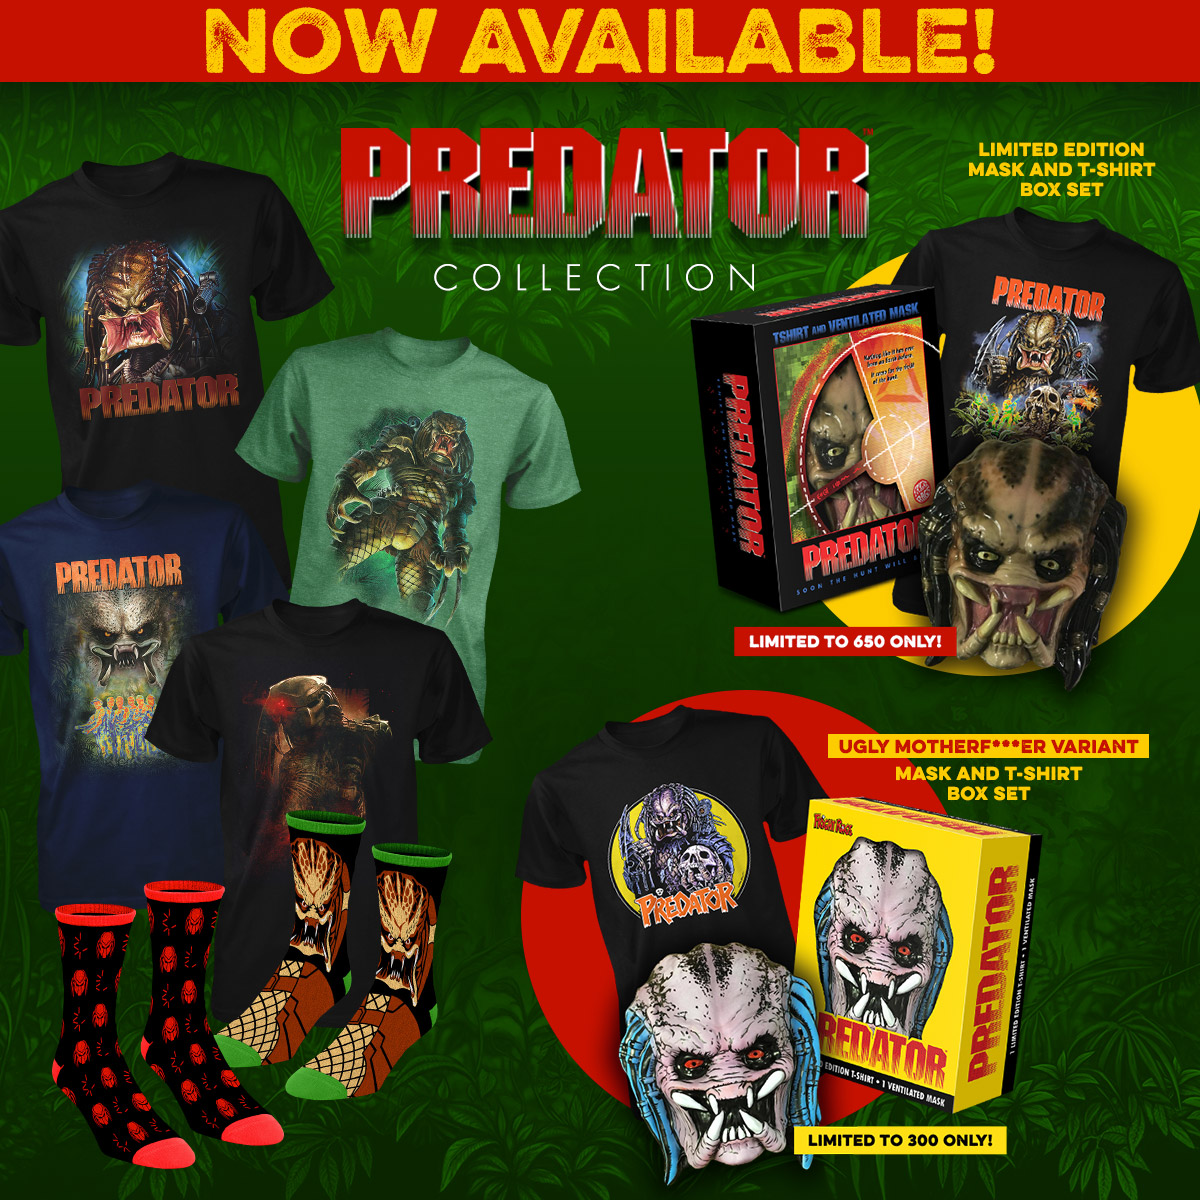 PREDATOR COLLECTION GOODIES from FRIGHT RAGS (link to